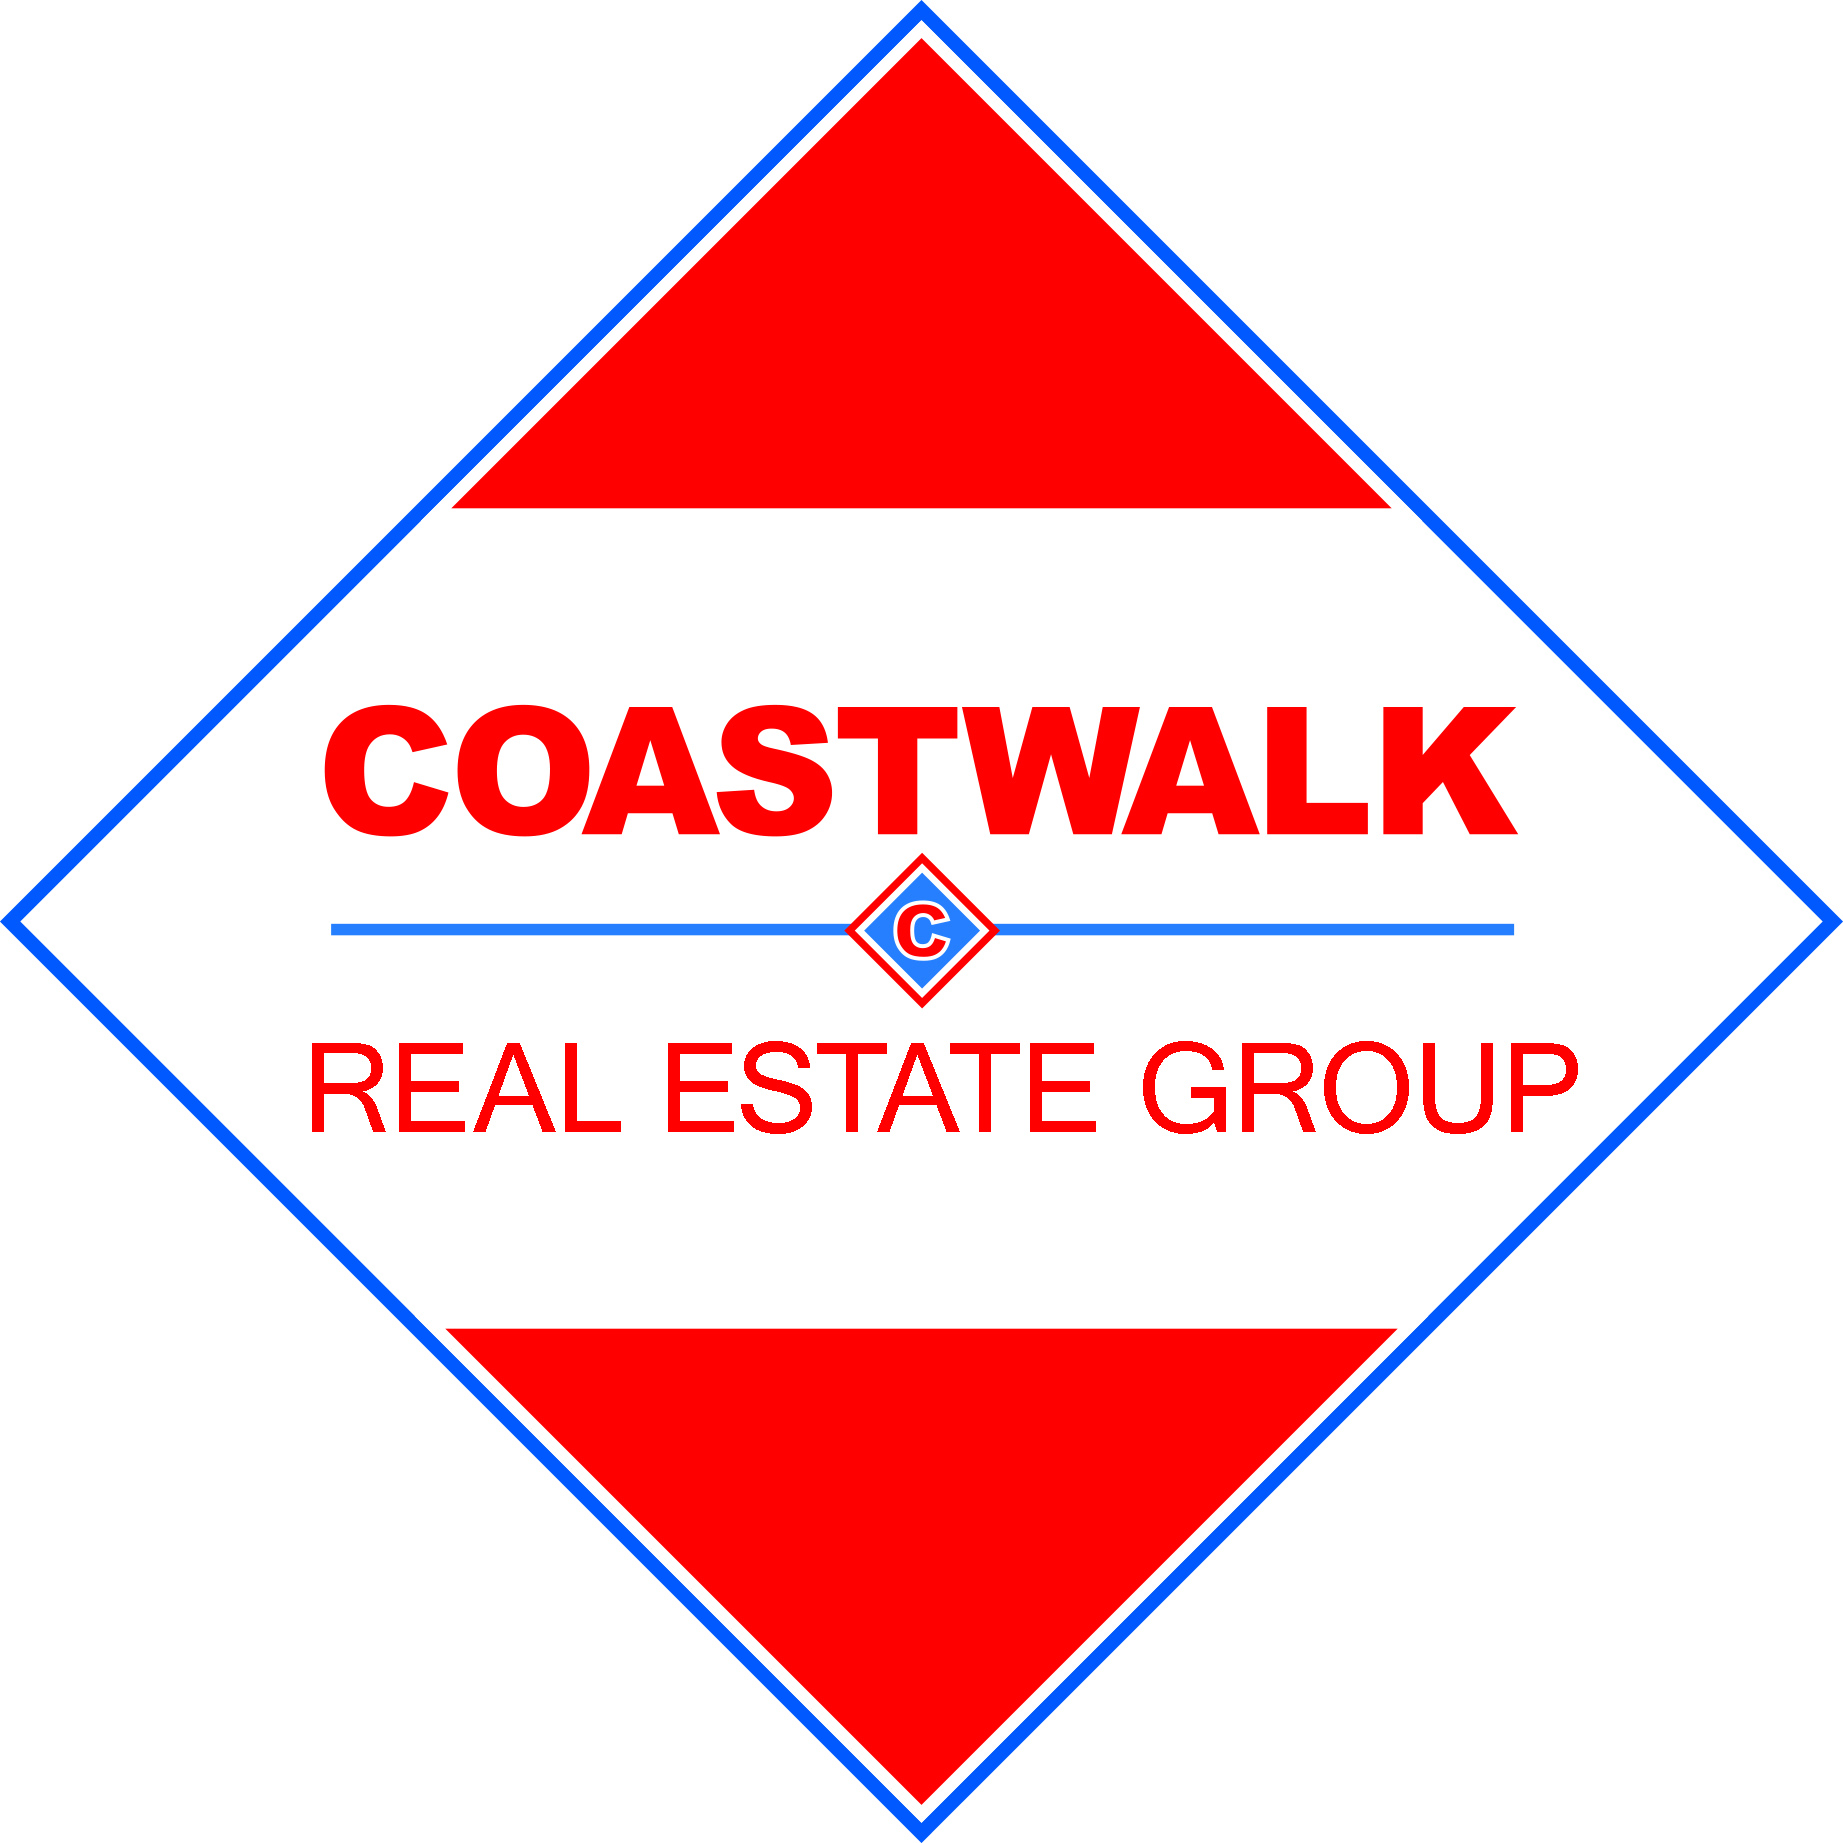 Coastwalk Real Estate Group